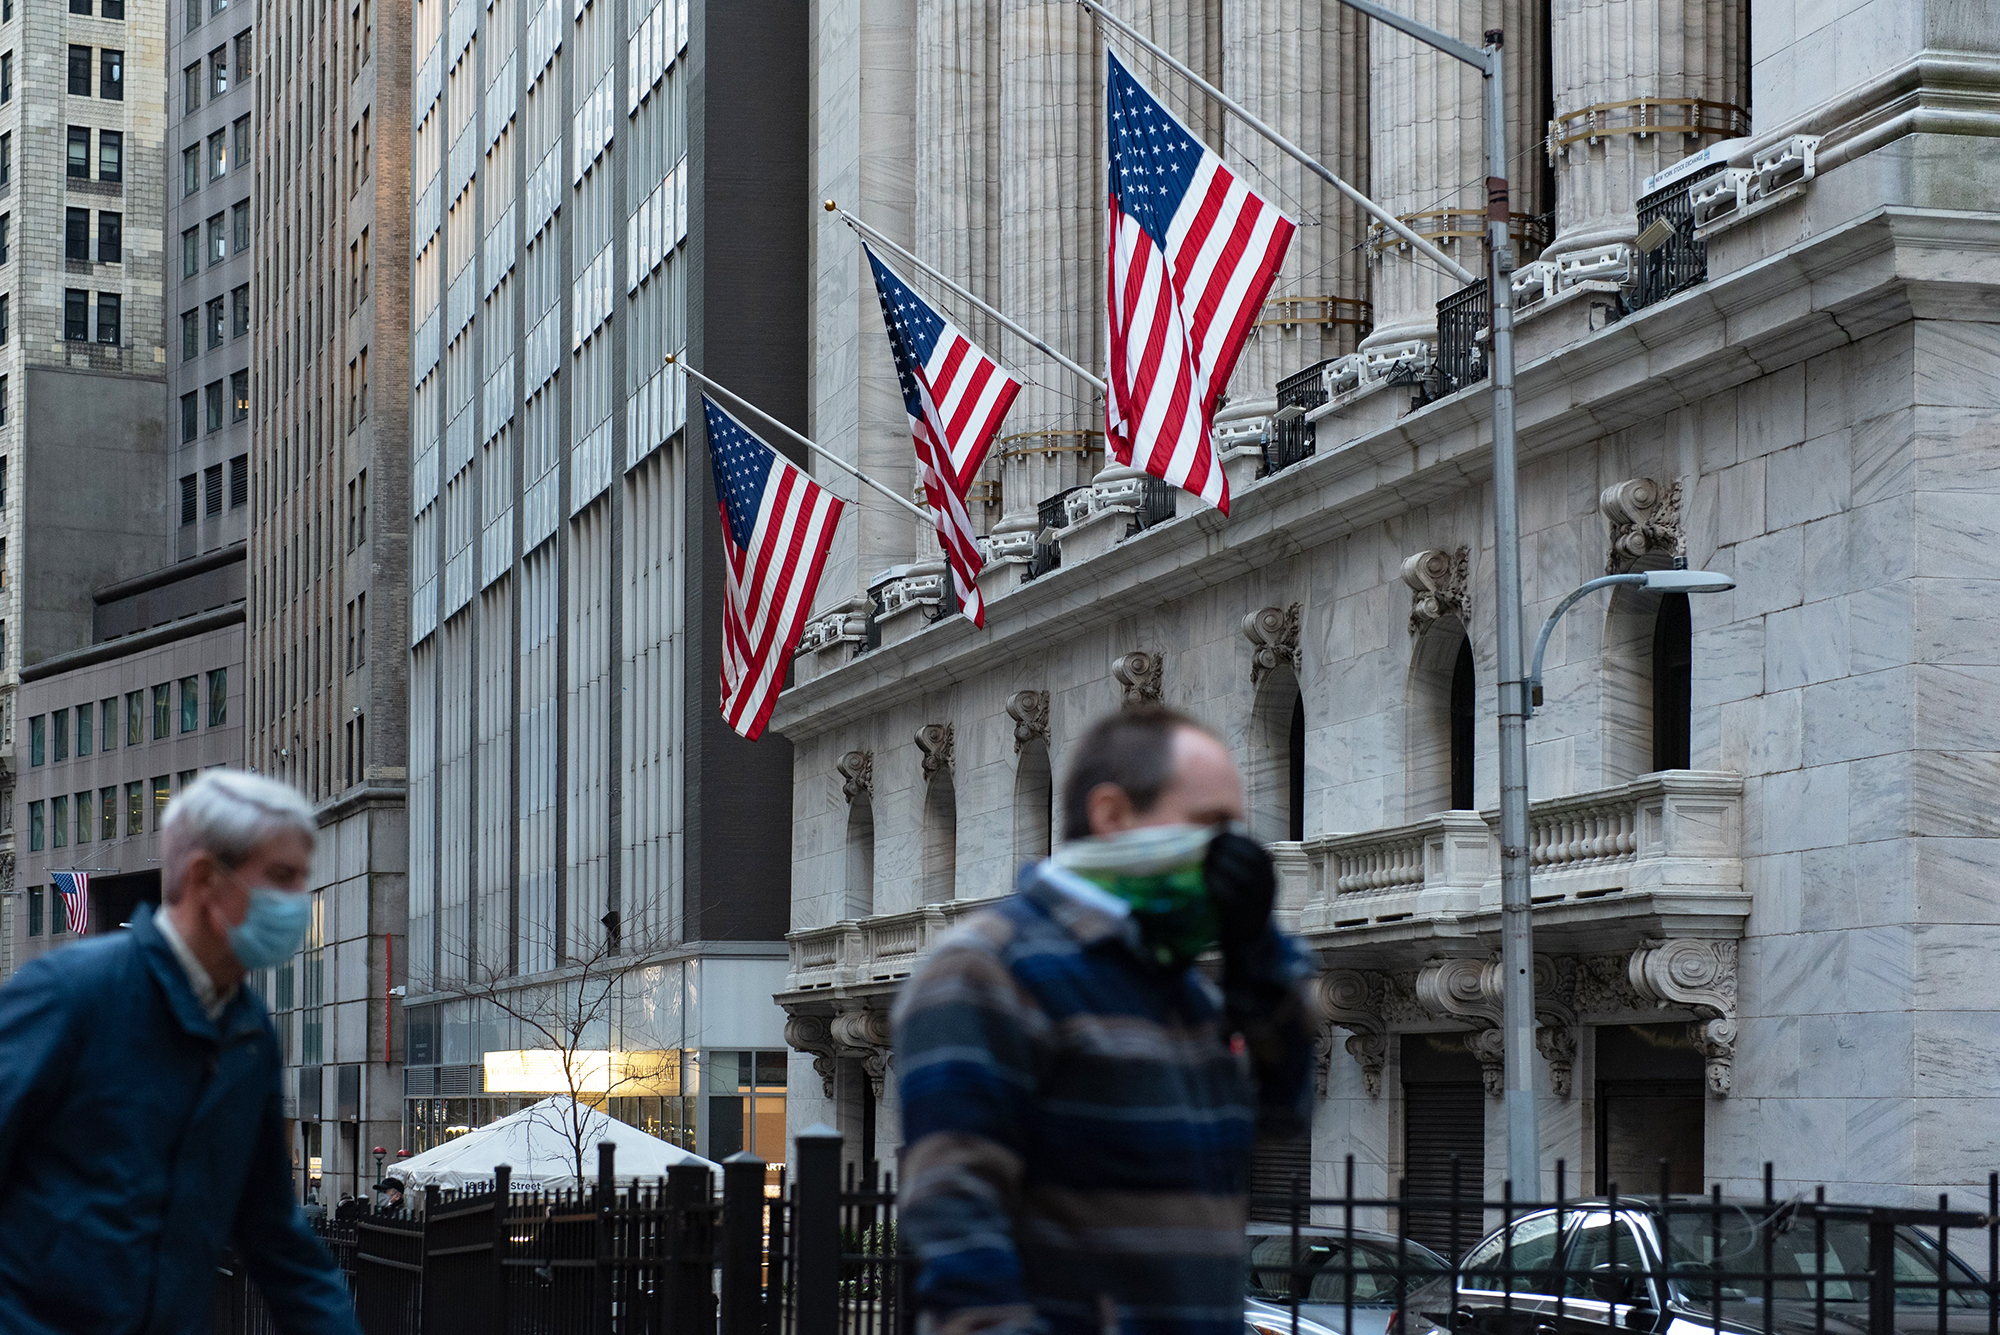 S&P 500 and Nasdaq hit record highs as volatility grips Wall Street